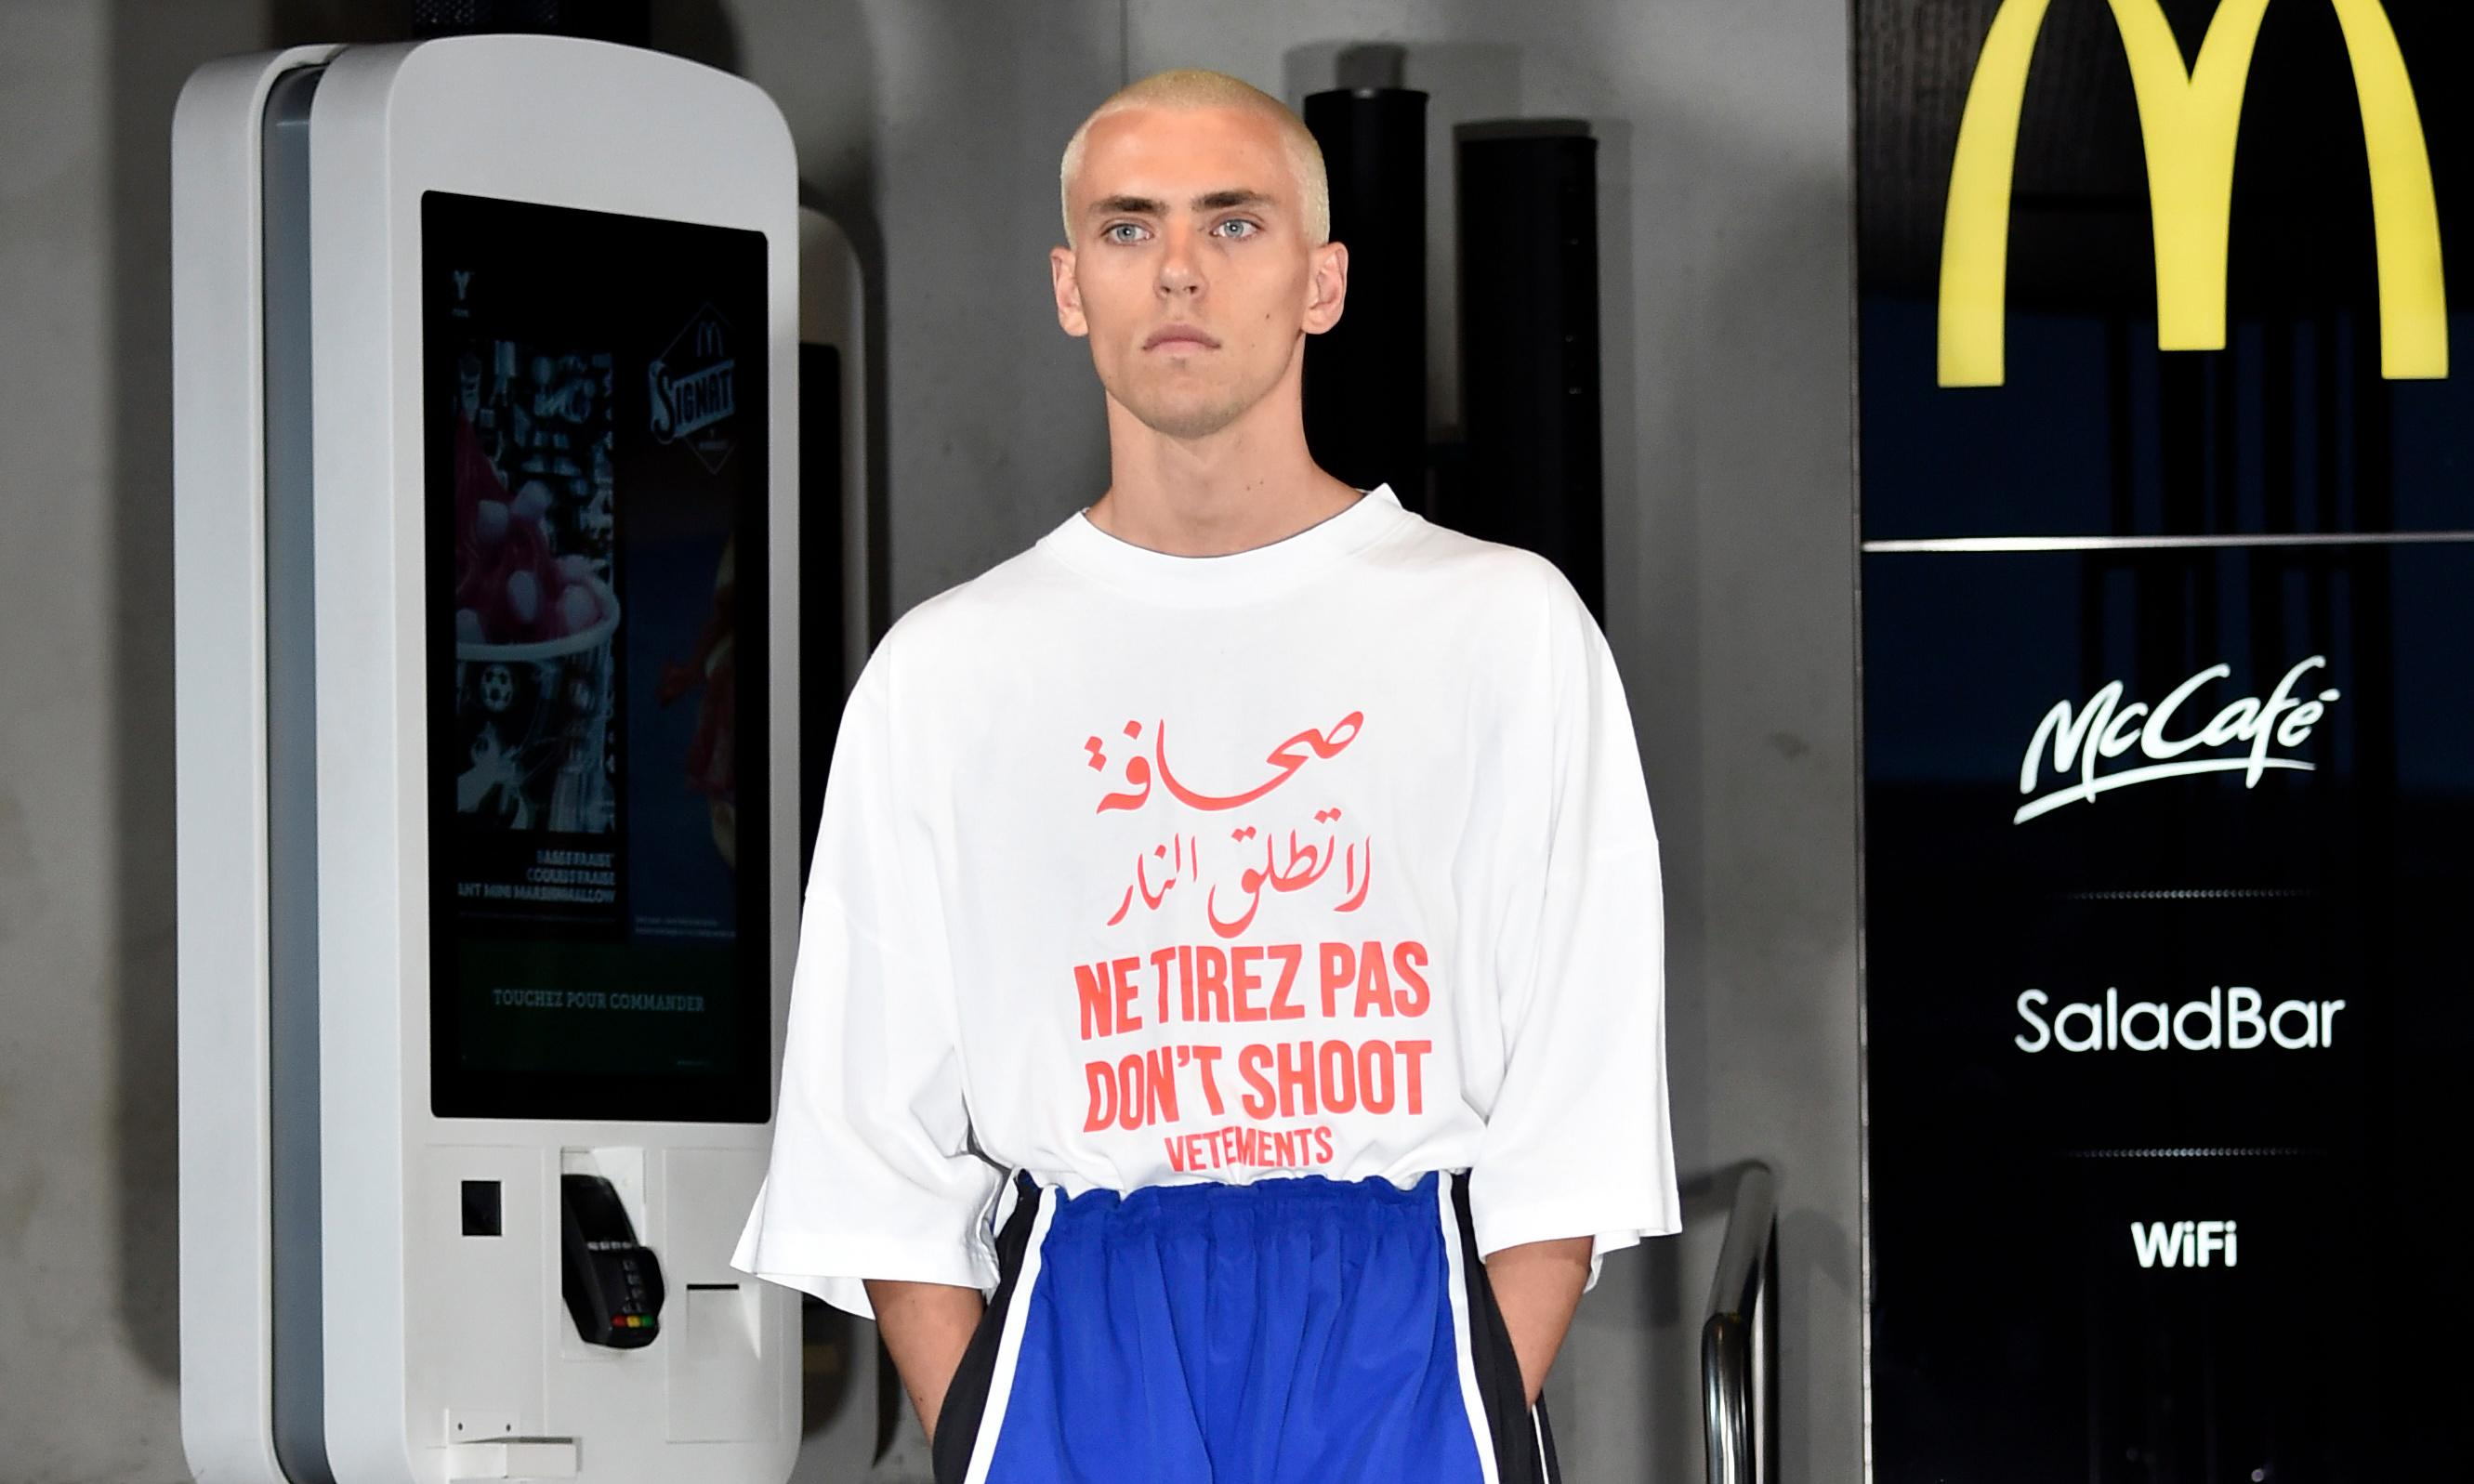 'Don't shoot': why Vetements' latest T-shirt is causing controversy